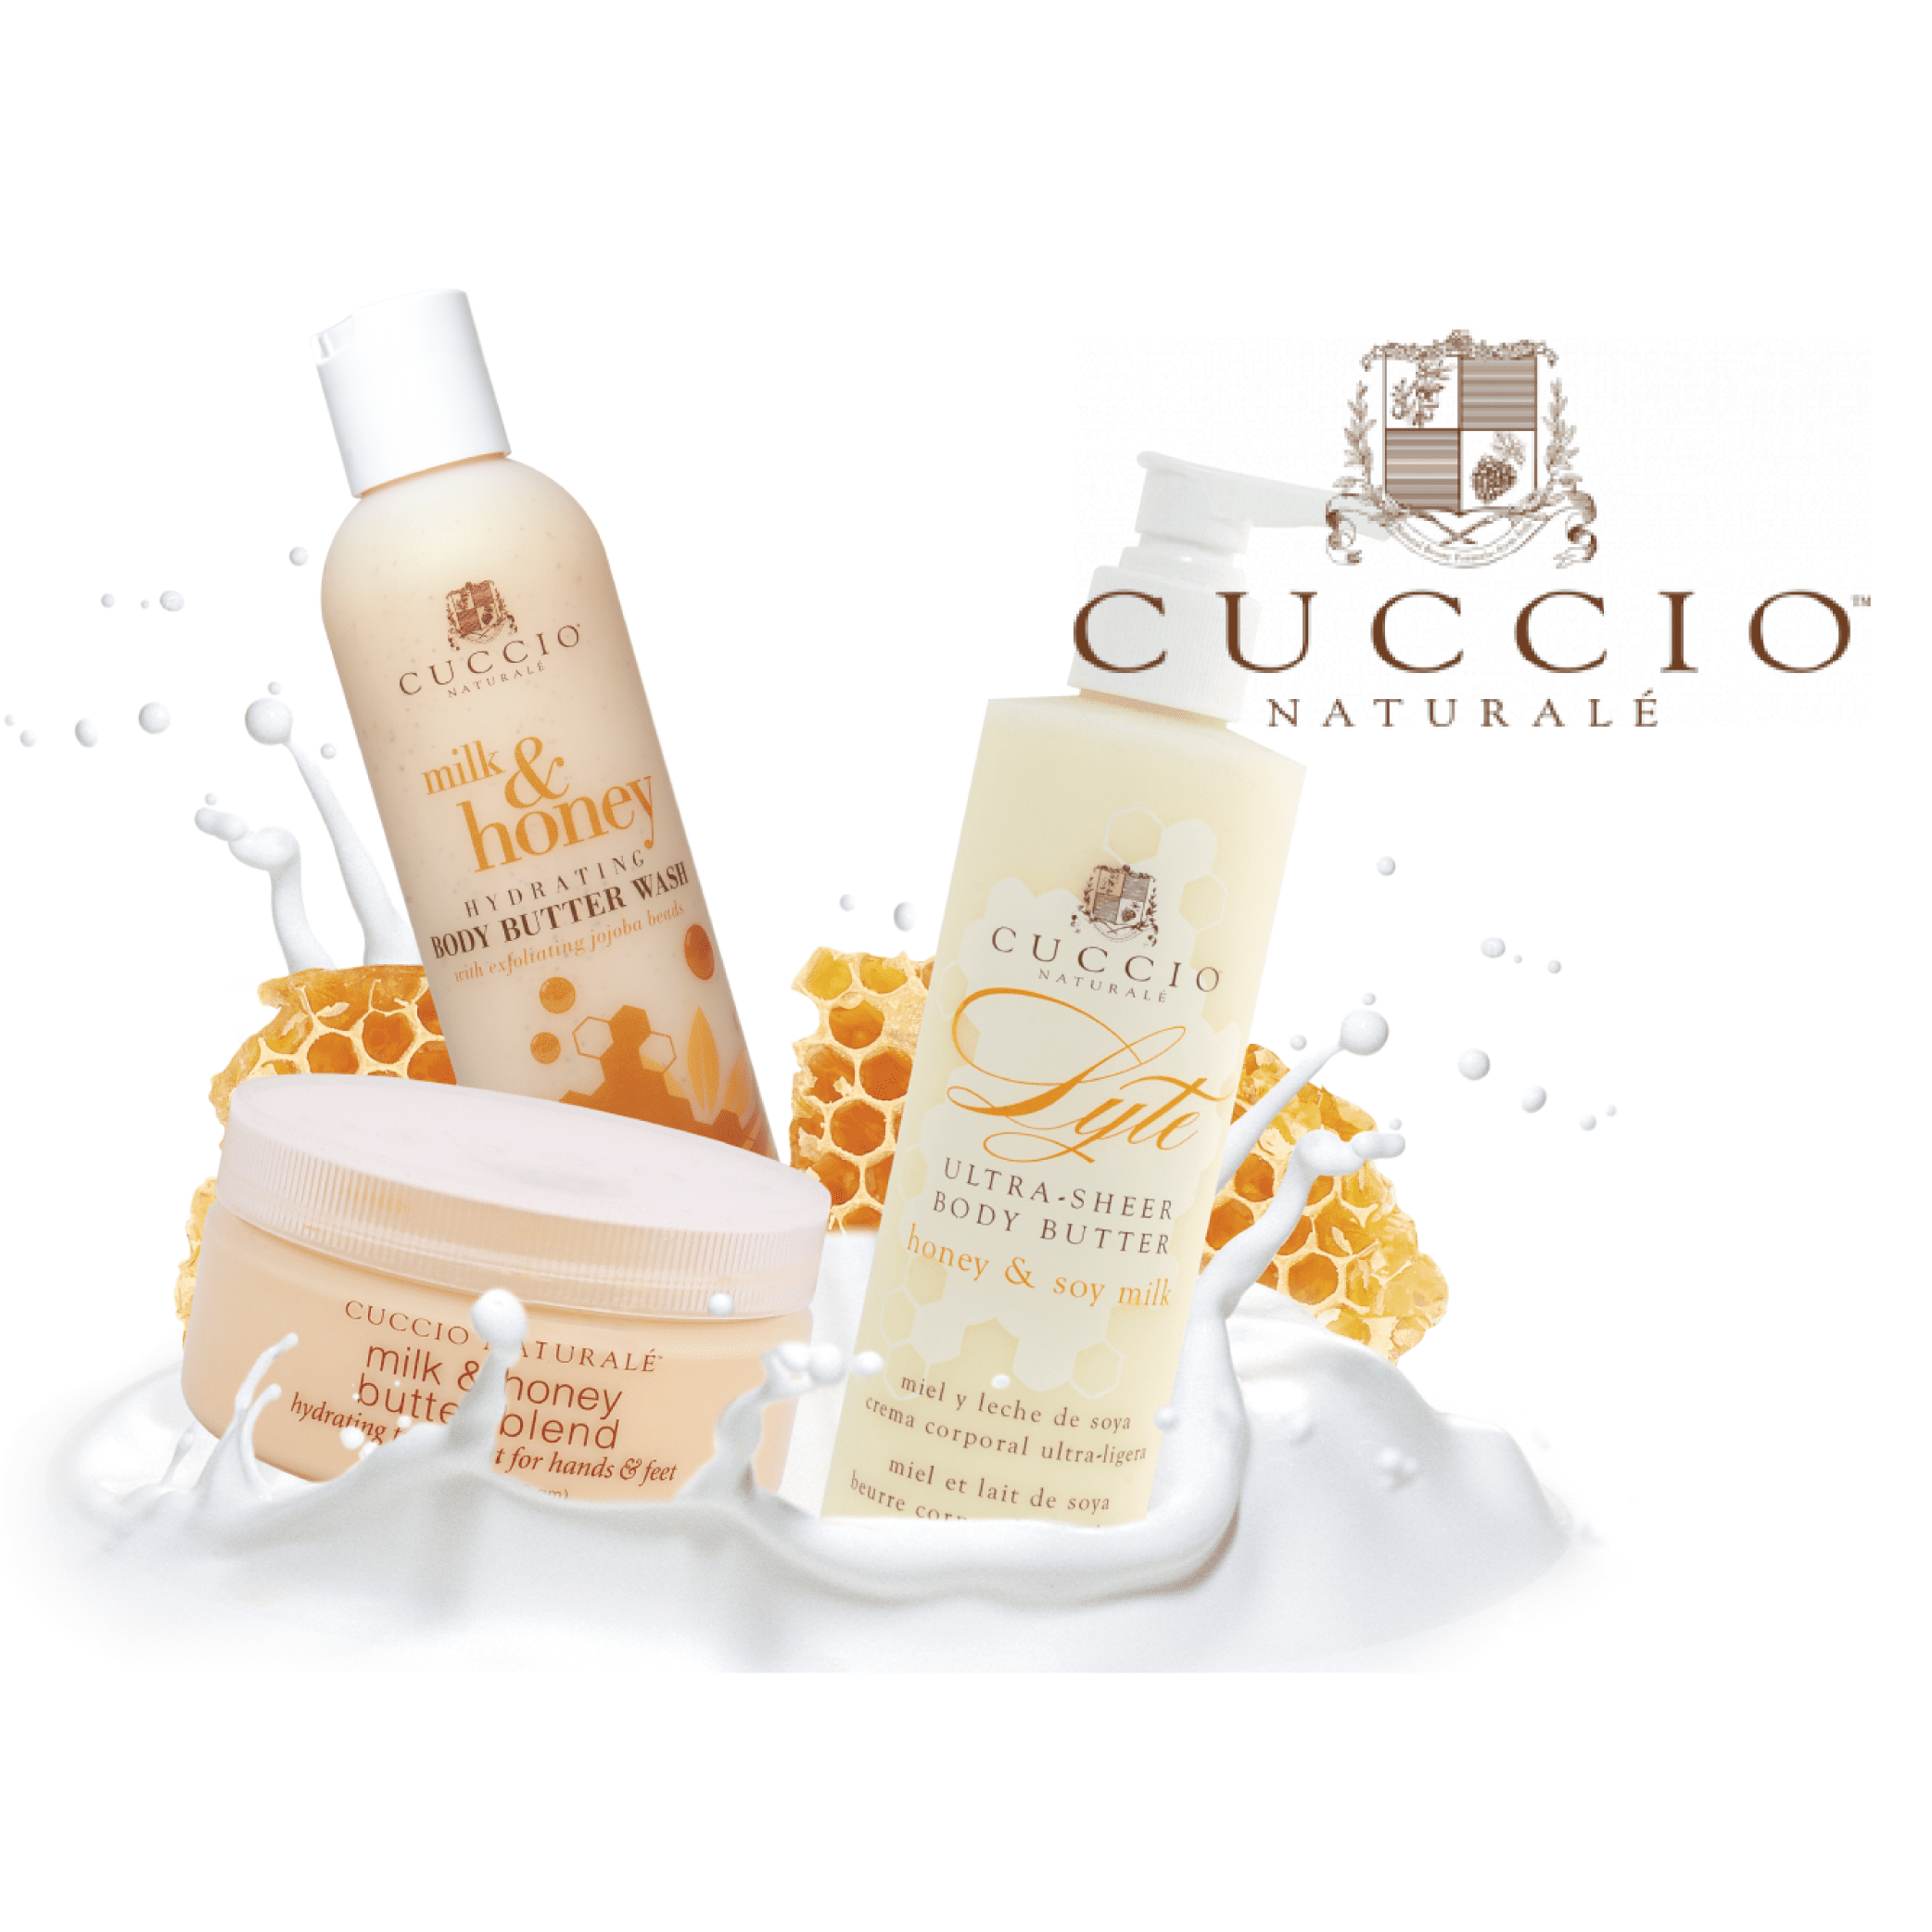 Wax and Relax - Harlow, Cuccio products